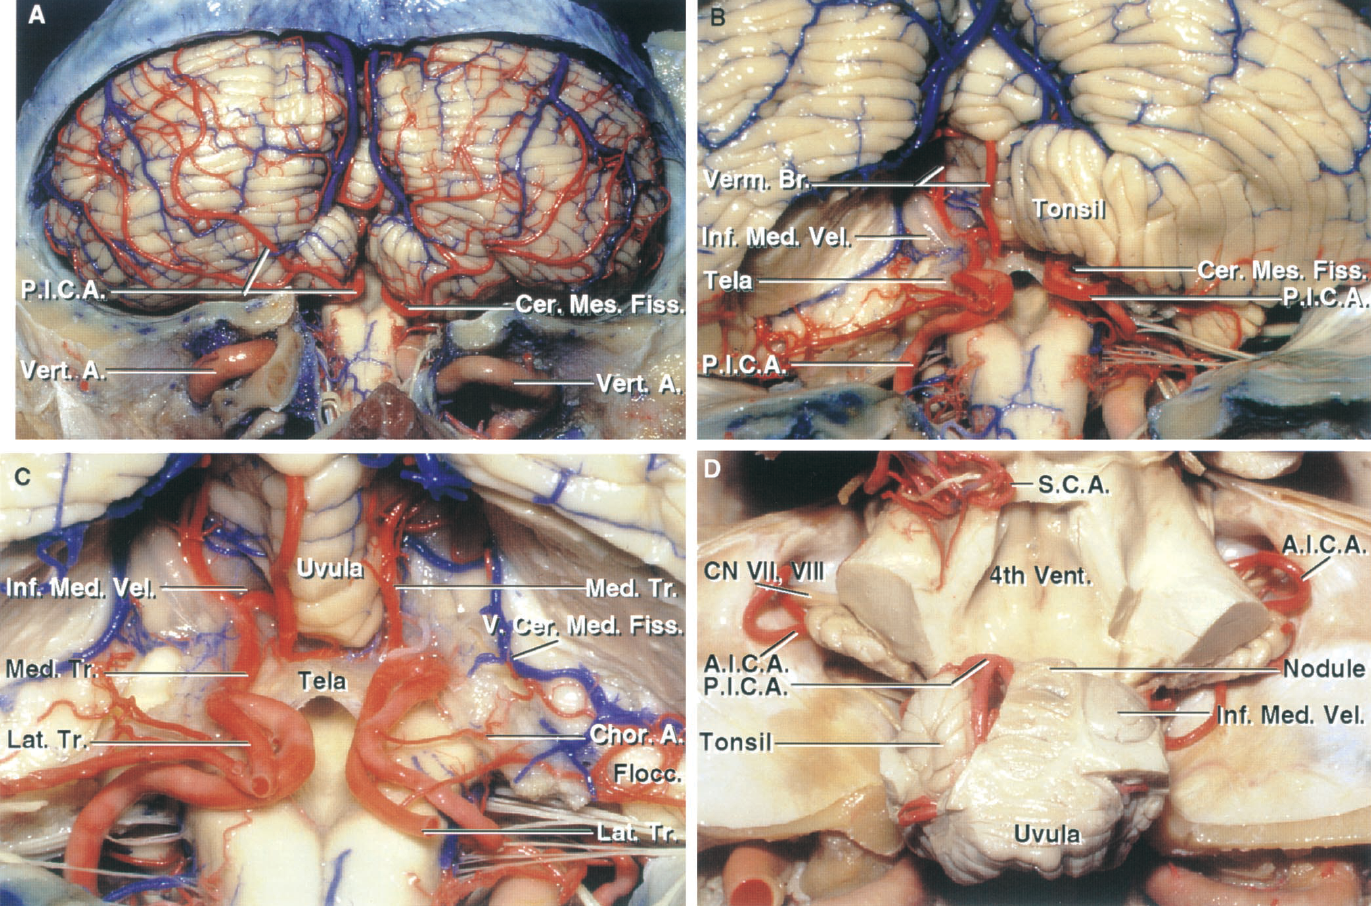 FIGURE 2.16. PICA relationships. A, the PICA courses around the medulla, enters the cerebellomedullary fissure, and exits the fissure to supply the suboccipital surface. The fissure extends upward between the cerebellar tonsils on one side and the medulla and inferior half of the ventricle roof on the other side. The PICAs frequently form a caudal loop at the lower pole of the cerebellar tonsils. B, enlarged view. The left tonsil has been removed to expose the course of the PICA within the cerebellomedullary fissure. The PICAs often loop upward around the rostral pole of the tonsil, where they course between the rostral pole of the tonsil on the lower side and the tela choroidea and inferior medullary velum on the upper side. C, both tonsils and the adjacent part of the biventral lobule have been removed to expose the PICA trunks. The PICAs divide into a medial trunk, which supplies the vermis and adjacent part of the hemisphere, and a caudal trunk, which loops around the tonsil to supply the largest part of the hemispheric surface. Choroidal branches pass to the tela choroidea and choroid plexus in the roof. The vein of the cerebellomedullary fissure crosses the tela and velum and passes above the flocculus to join the veins in the cerebellopontine angle that empty into the superior petrosal sinus. D, another dissection showing the relationship of the cranial loop of the PICA to the tonsils and inferior medullary velum. Both tonsils and the nodule and uvula have been preserved. The inferior medullary velum has been preserved on the right side. The left half of the inferior medullary velum has been removed to expose the supratonsillar loop of the PICA, which courses between the velum and the tonsil. The velum stretches laterally from the nodule across the rostral pole of the tonsil to blend into the flocculus. A., artery; A.I.C.A., antero- inferior cerebellar artery; Br., branch; Cer. Med., cerebellomedullary; Cer. Mes., cerebellomesencephalic; Chor., choroidal; CN,